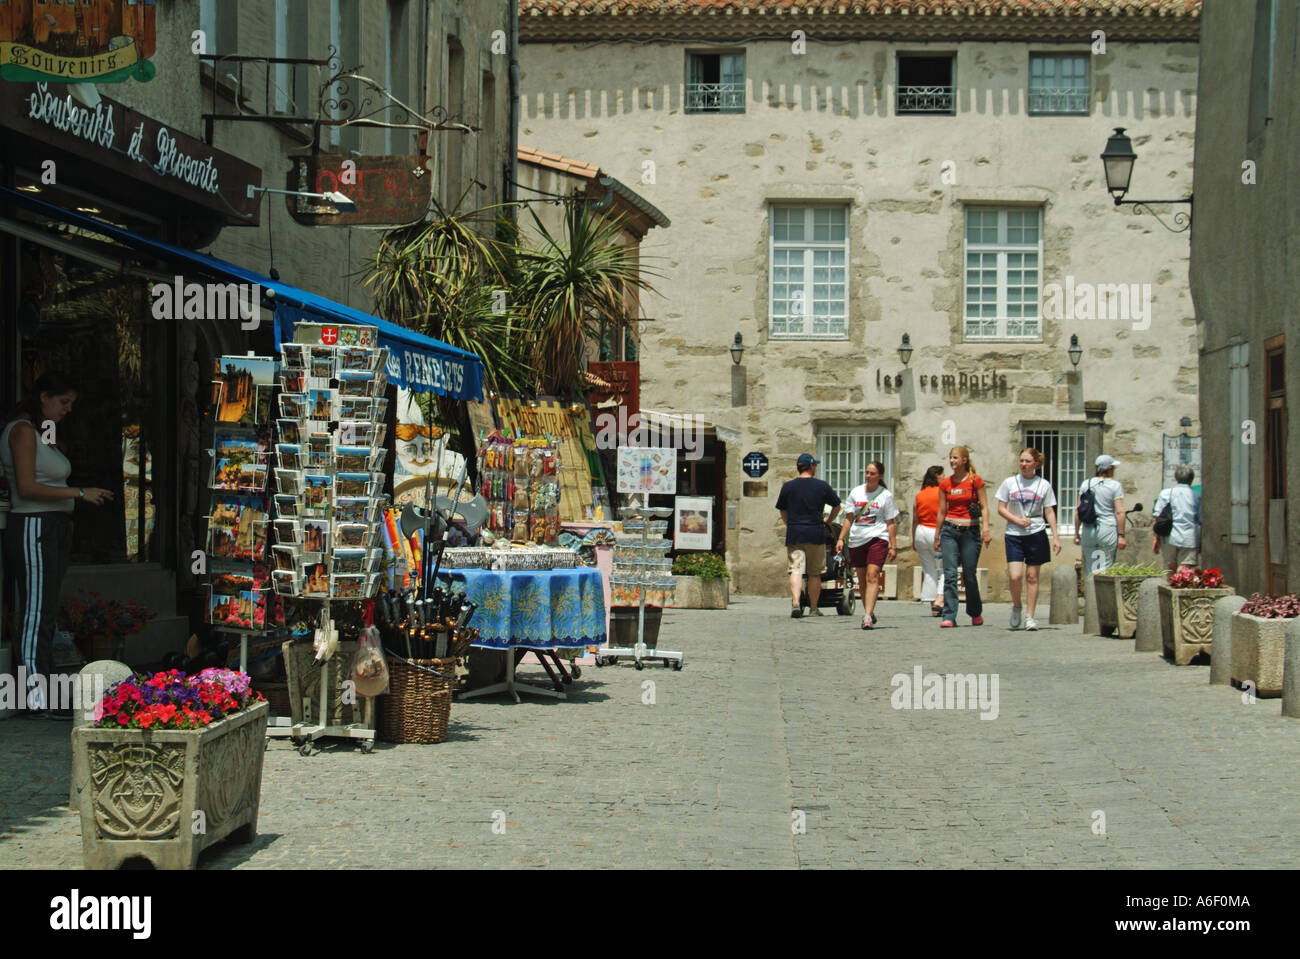 Carcassonne fortified medieval town typical street with shops and tourists Stock Photo